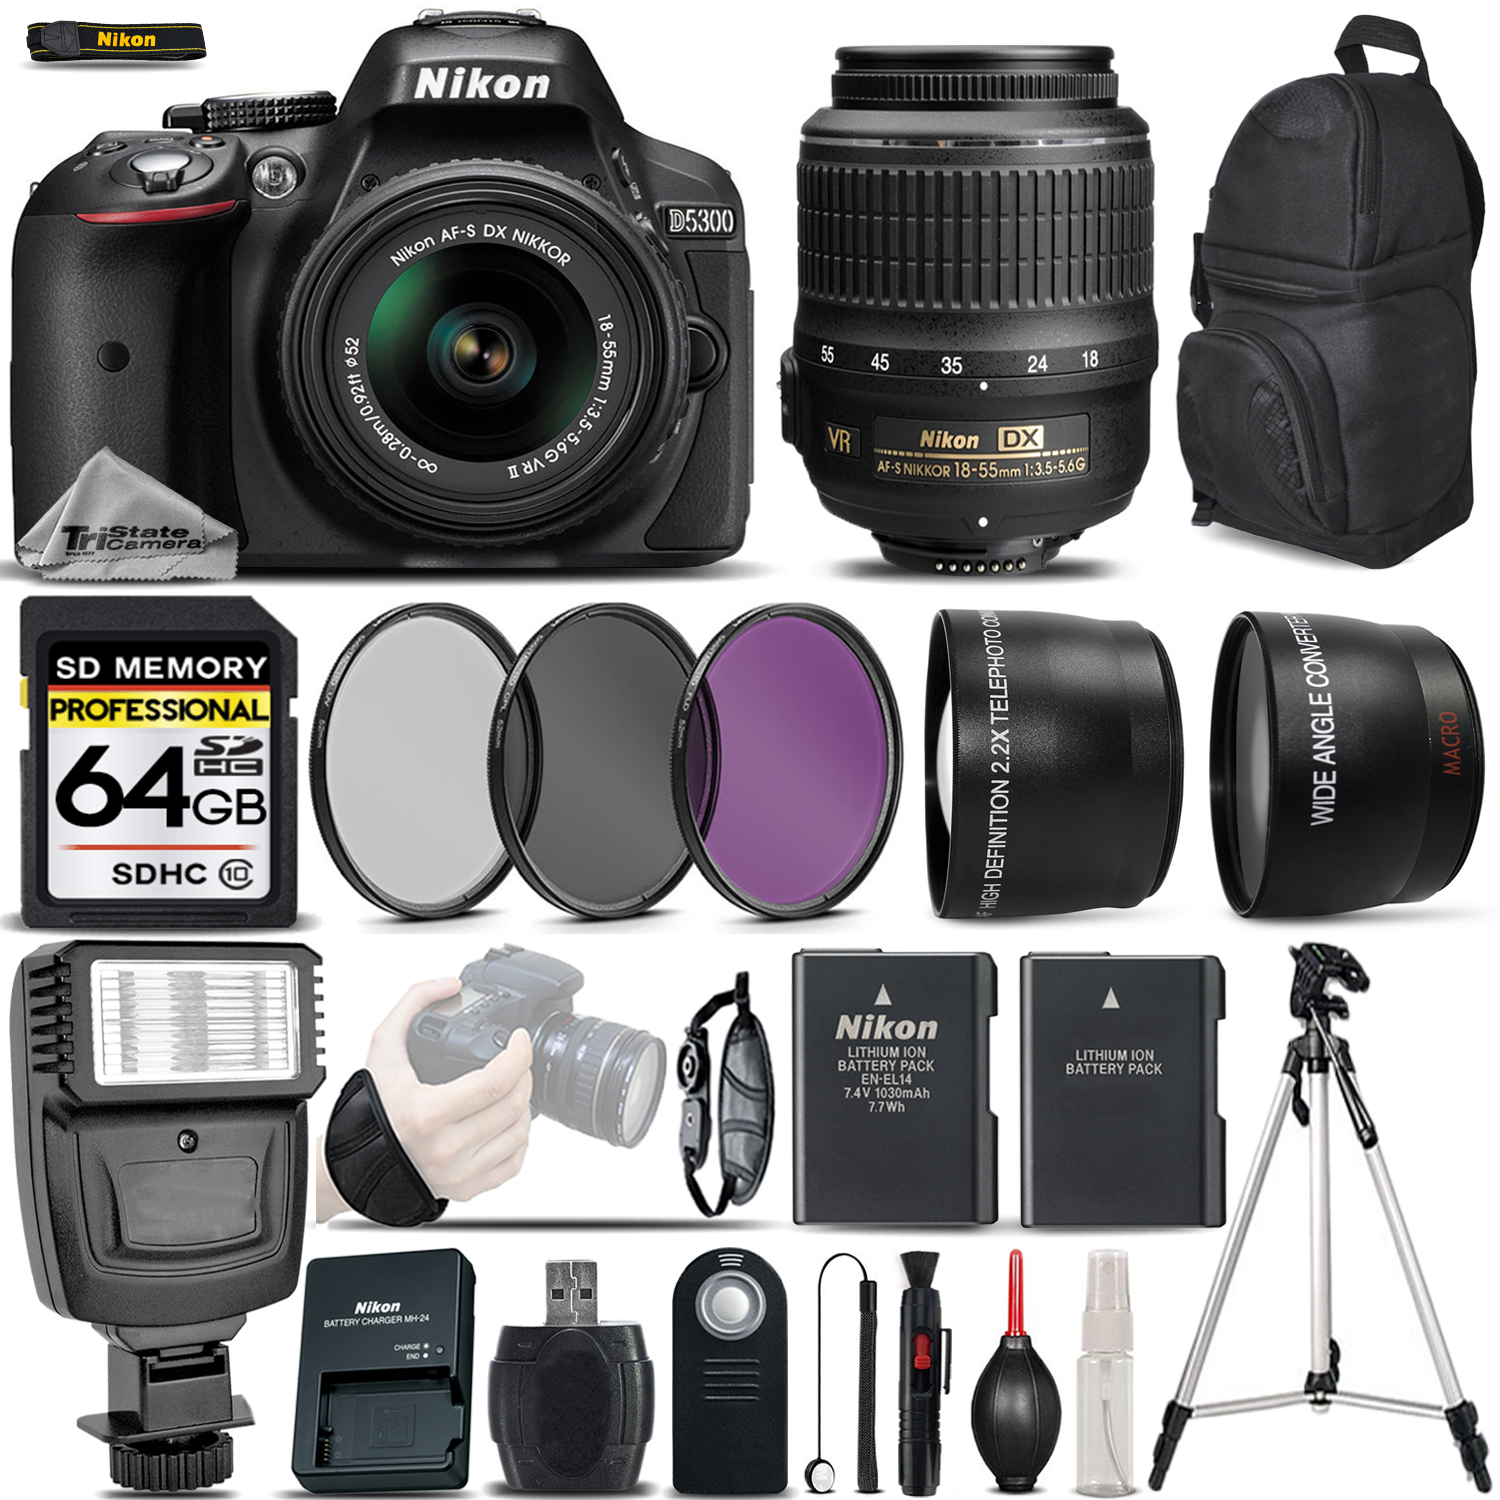 Nikon D5300 DSLR Camera Built-In Wi-Fi + Nikon 18-55mm VR Lens + Flash + 0.43X Wide Angle Lens + 2.2x Telephoto Lens + 3PC Filter Kit. All Original Accessories Included - International Version